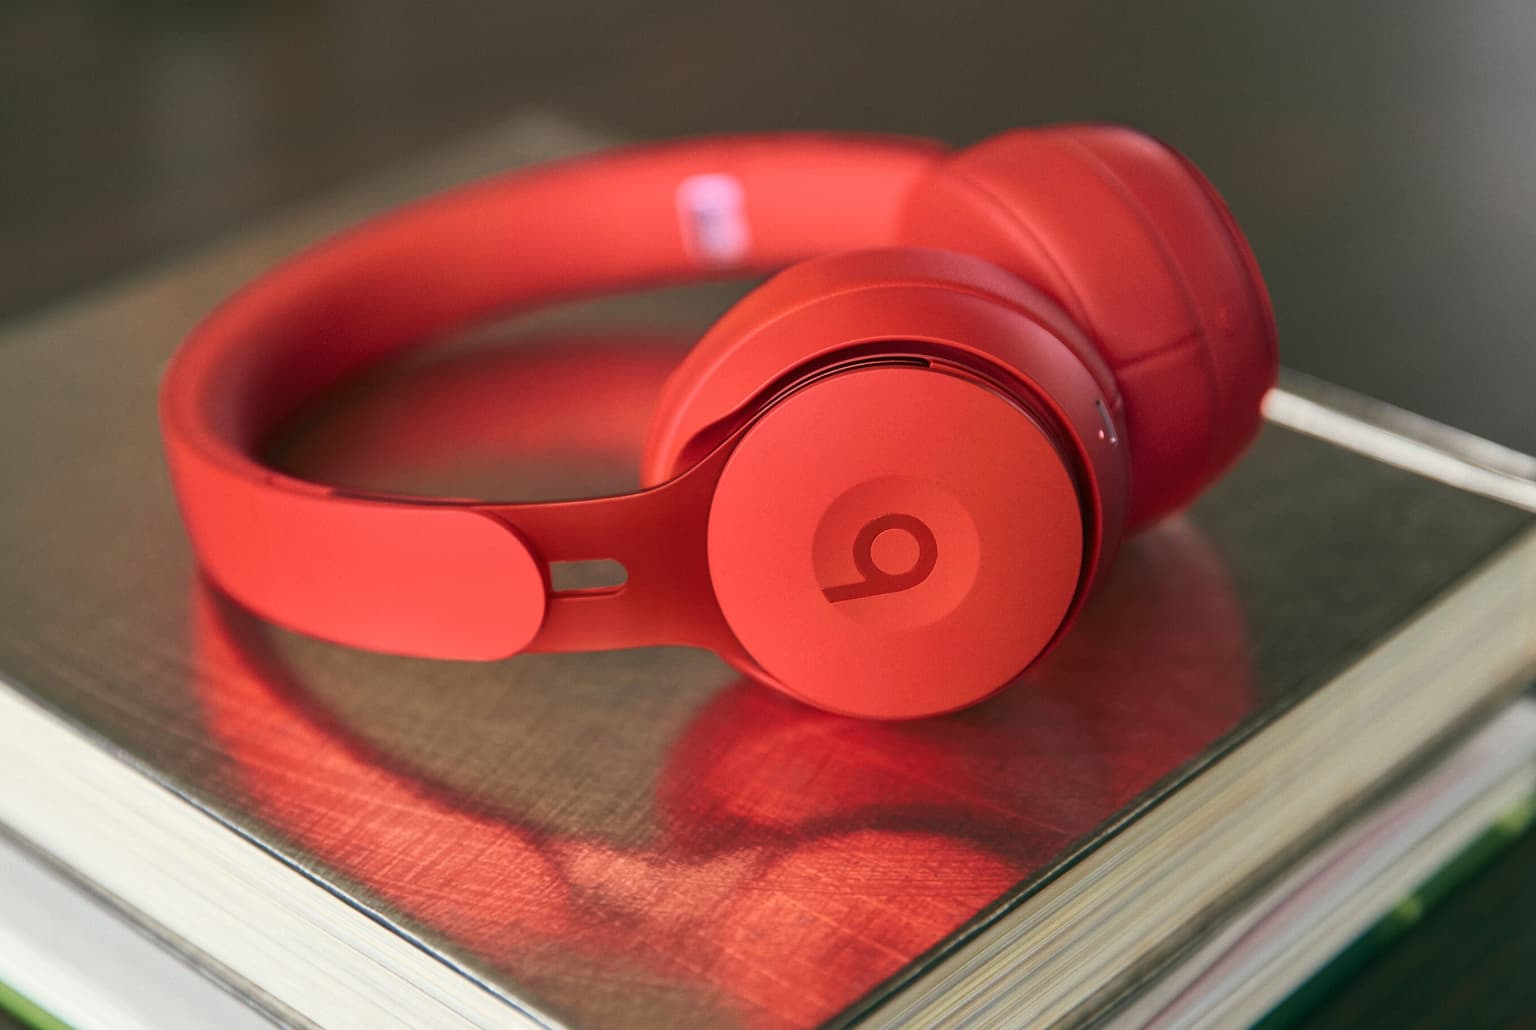 Apple's Beats just announced new noise-canceling headphones with 'Hey Siri'